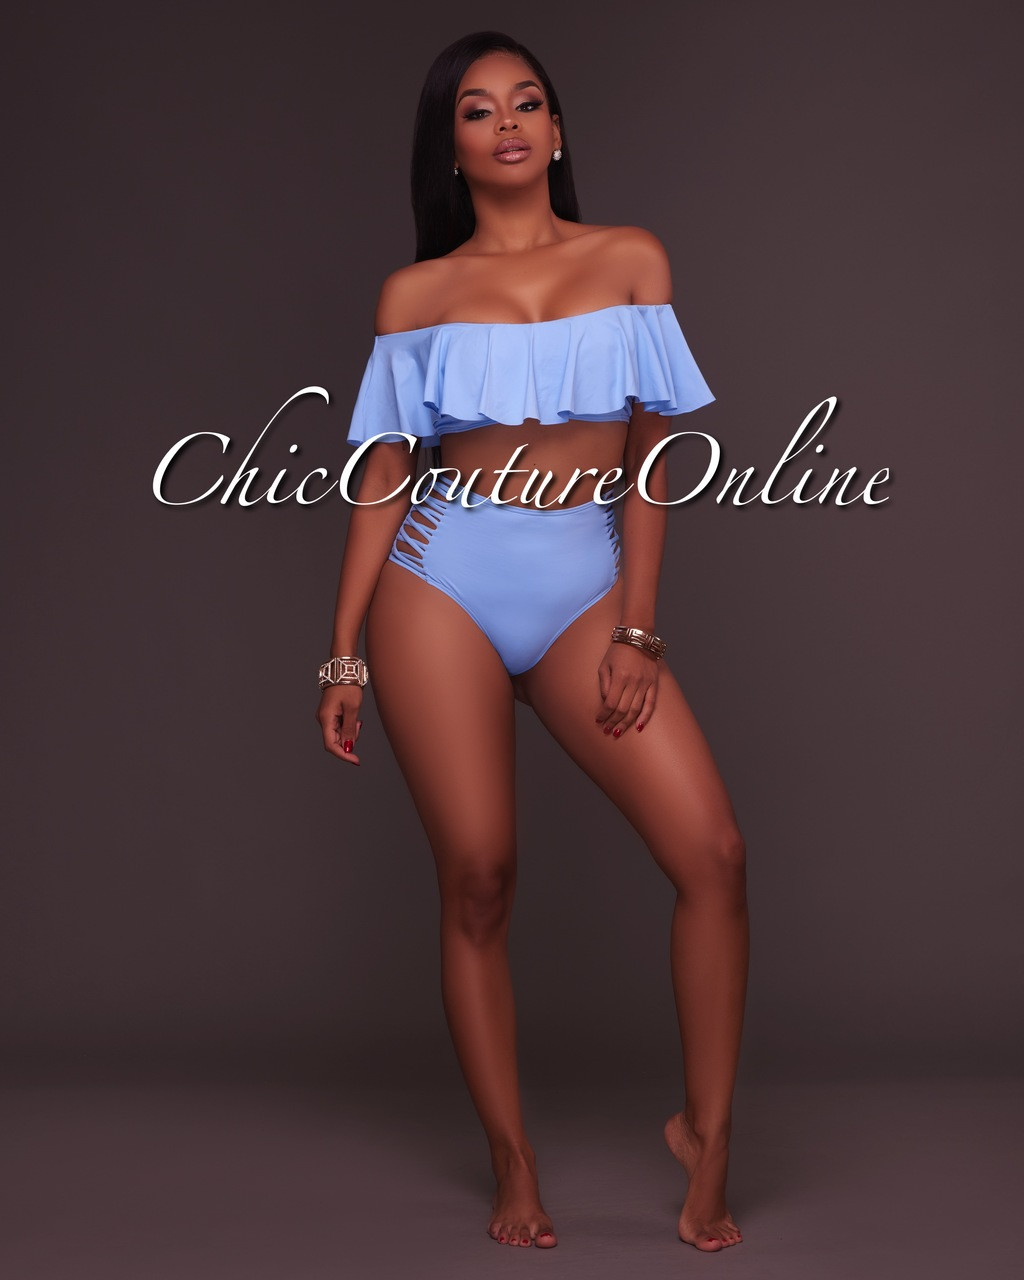 b123519720c9c Ohara Blue Ruffle Top and Strappy High Waist Bottom Two Piece Swimsuit.  Your Price   40.00 (You save  10.00). Image 1